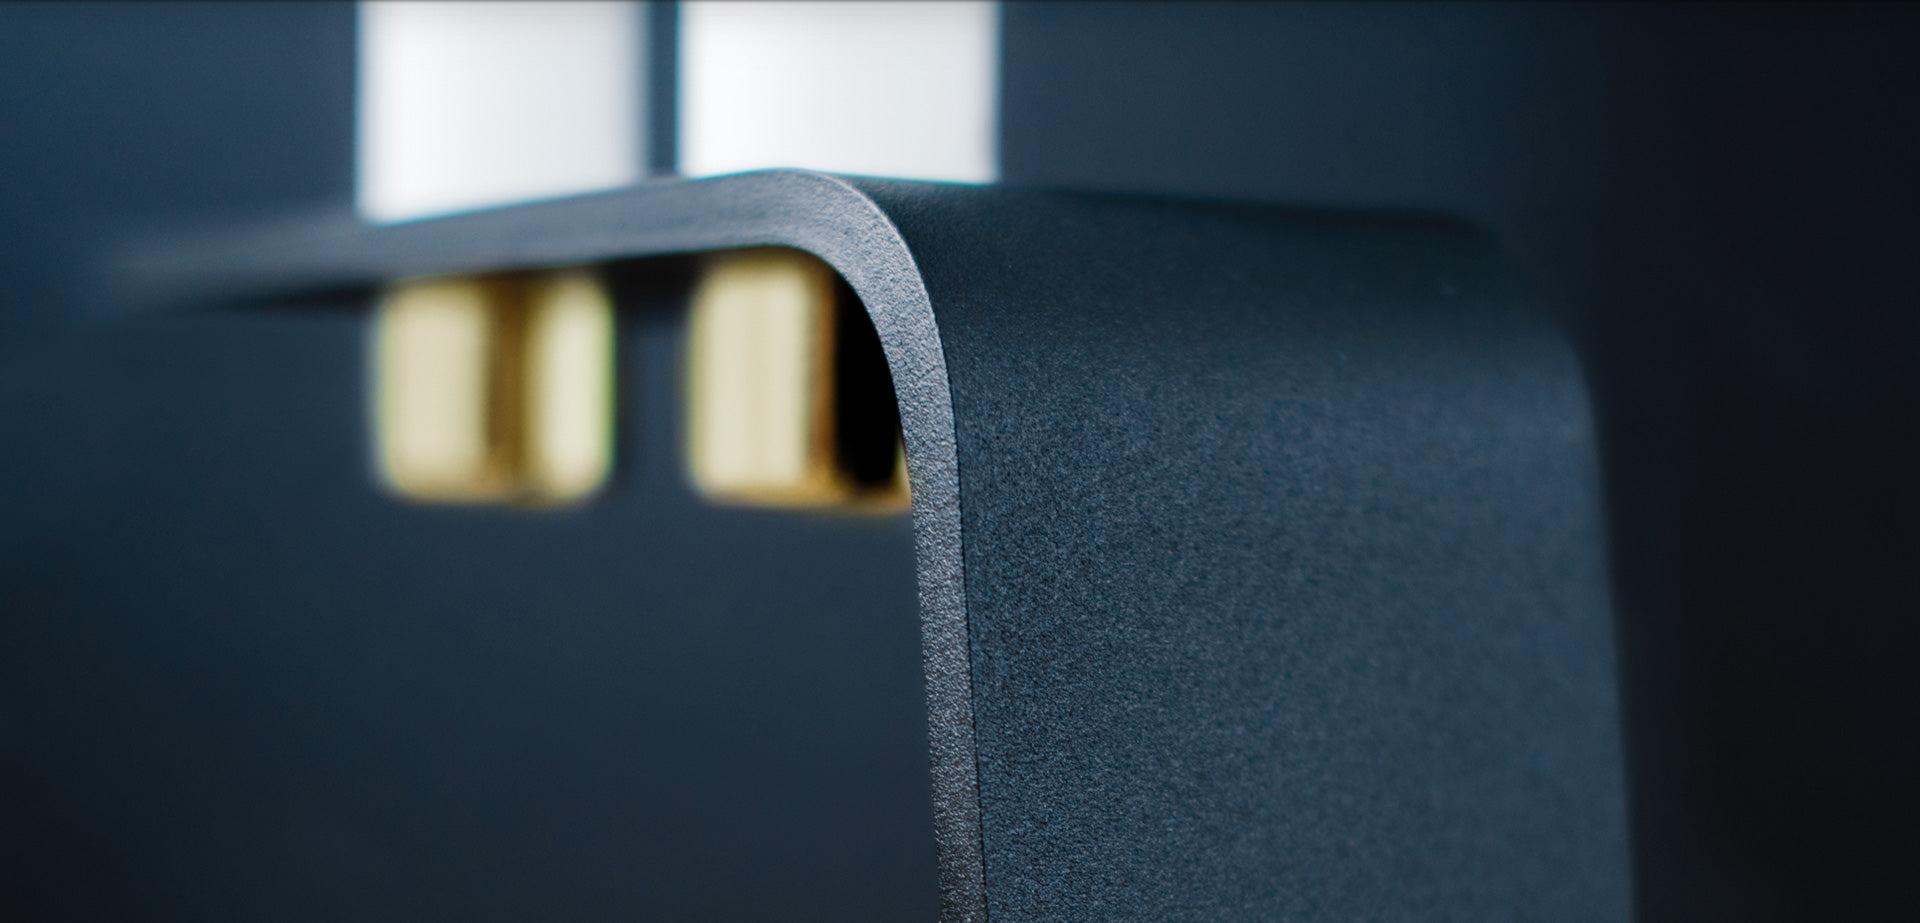 Vnkl candle holder close up of matte black powdercoated textured surface